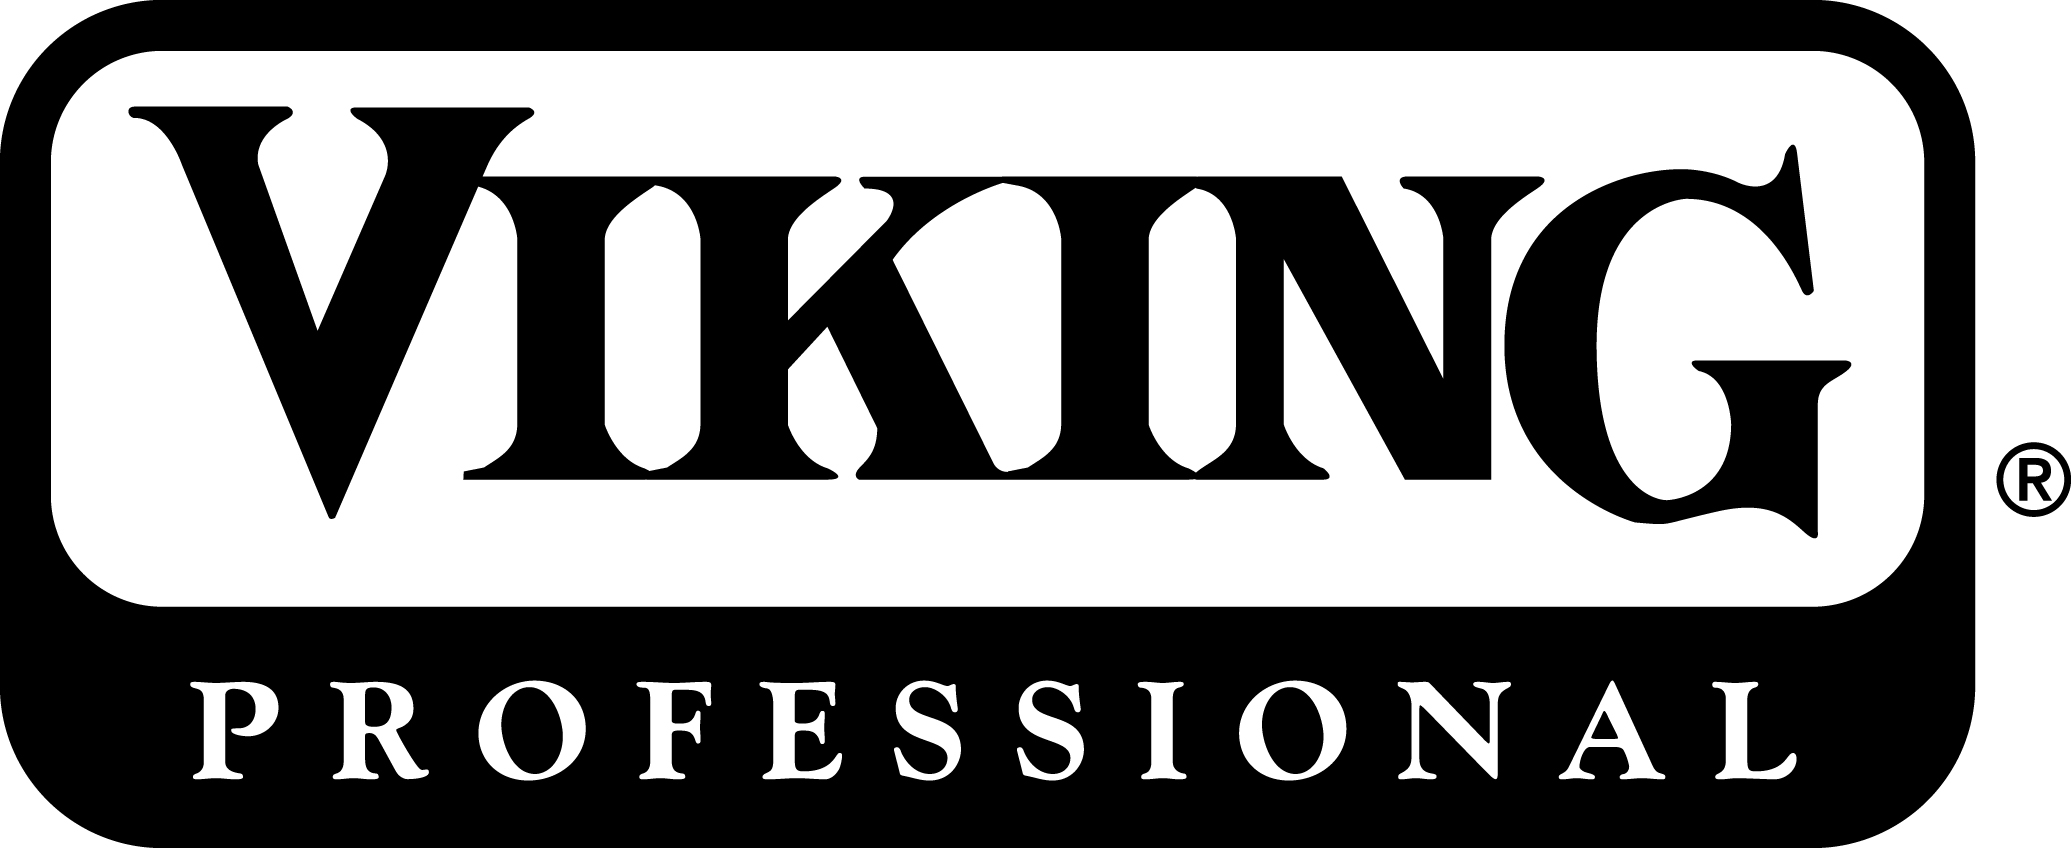 Viking Refrigerator Repair, Kenmore Freezer Repair Service